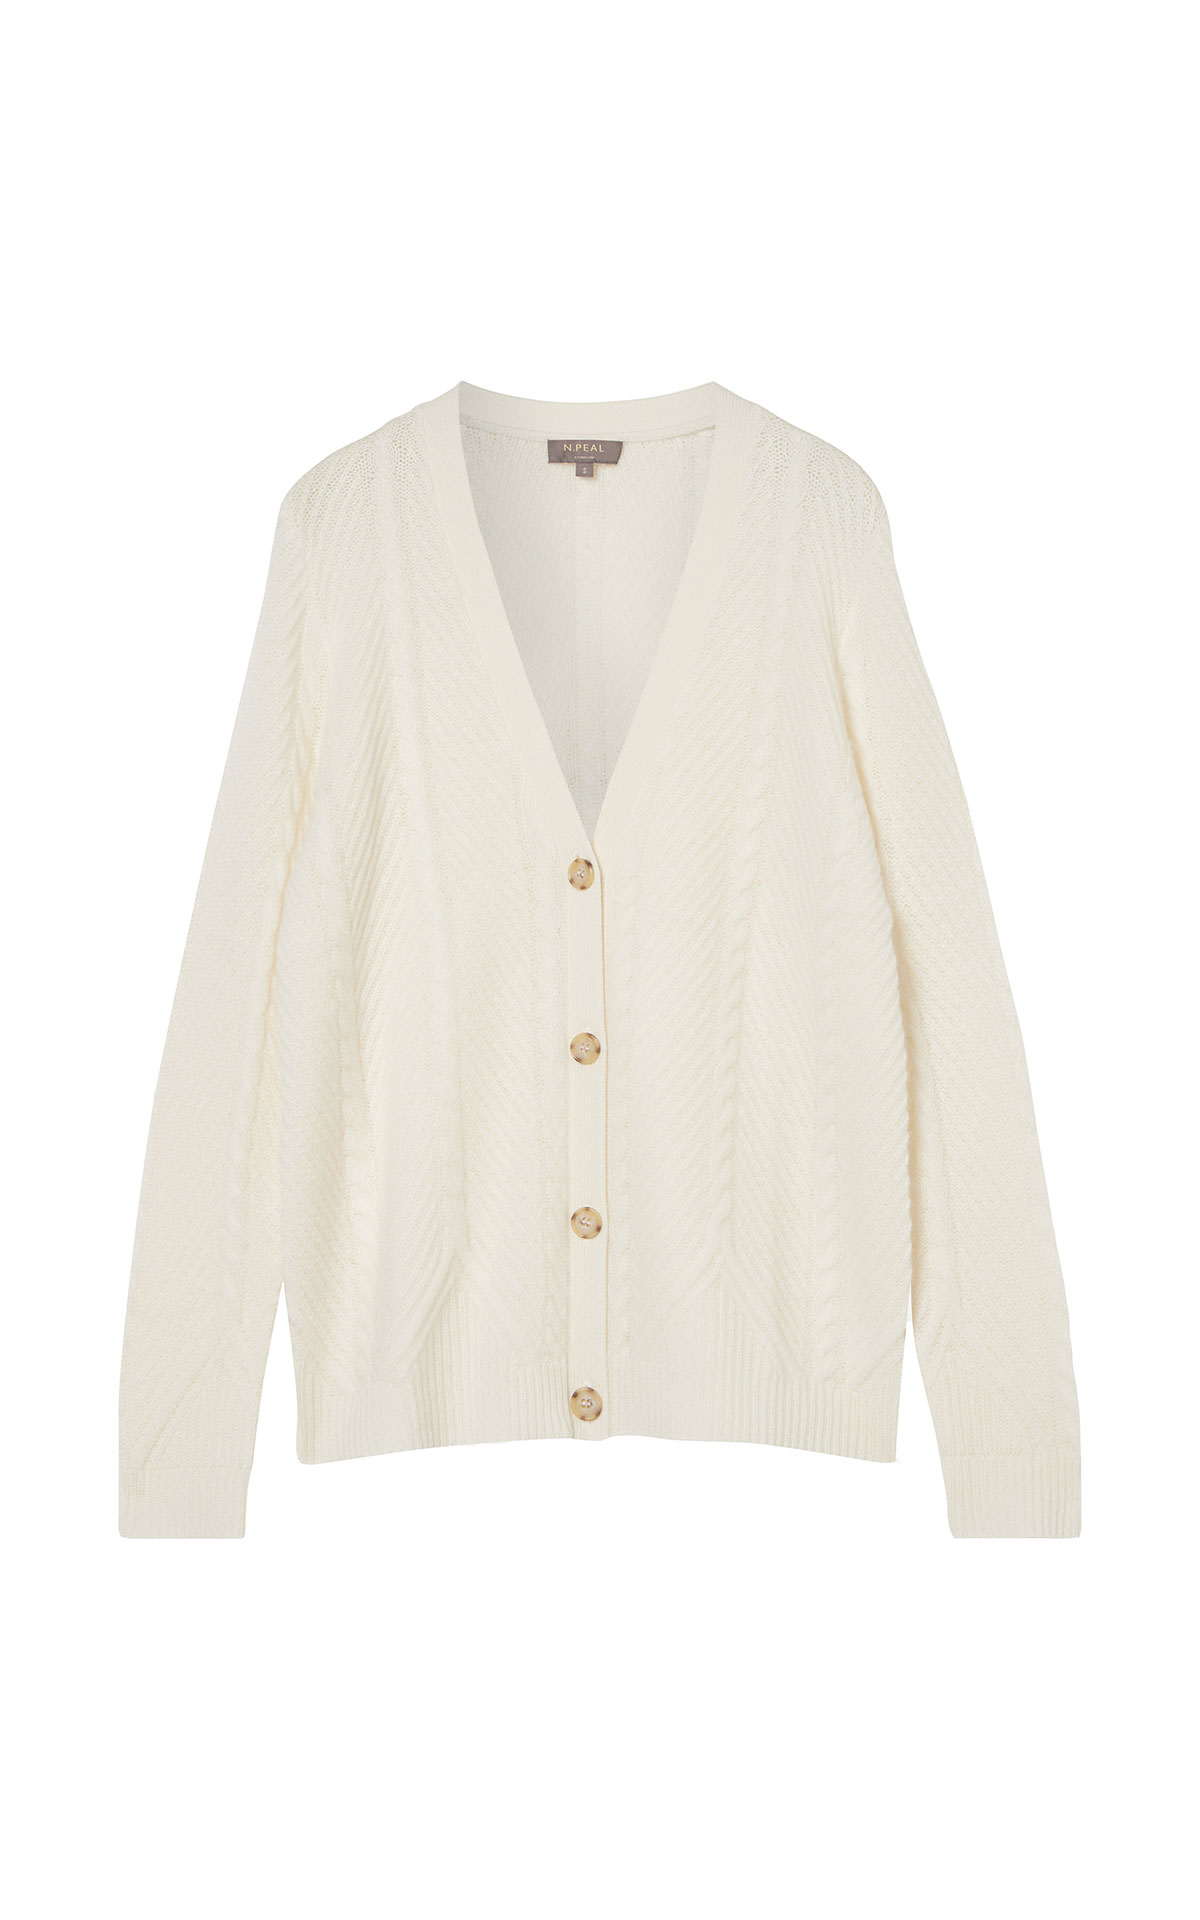 N. Peal Diagonal rib cardigan from Bicester Village